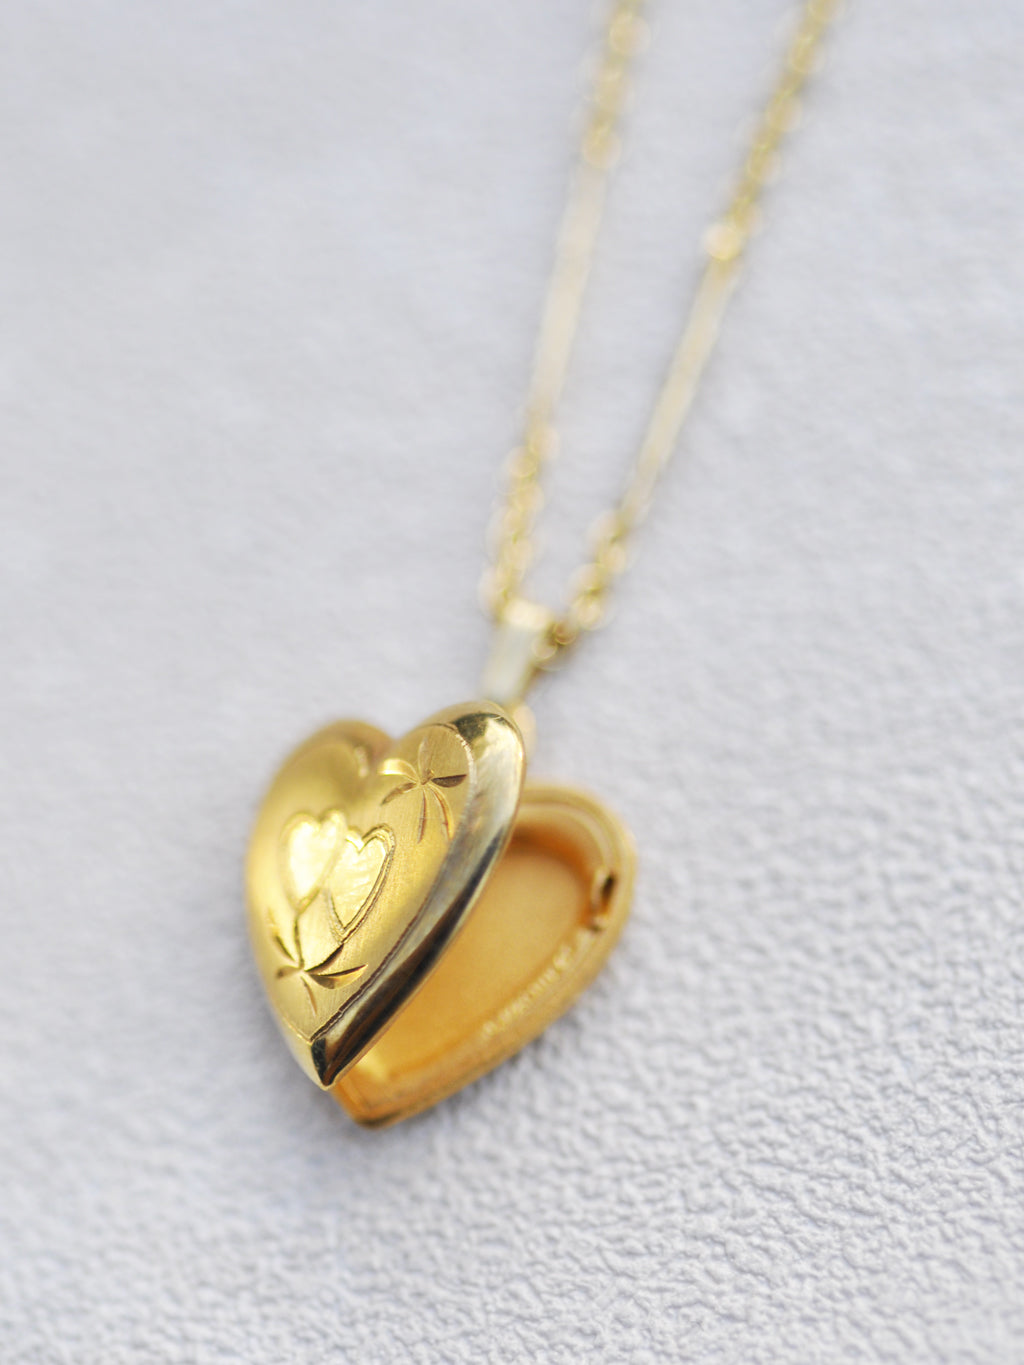 14K Goldfill Dainty Double Heart Locket